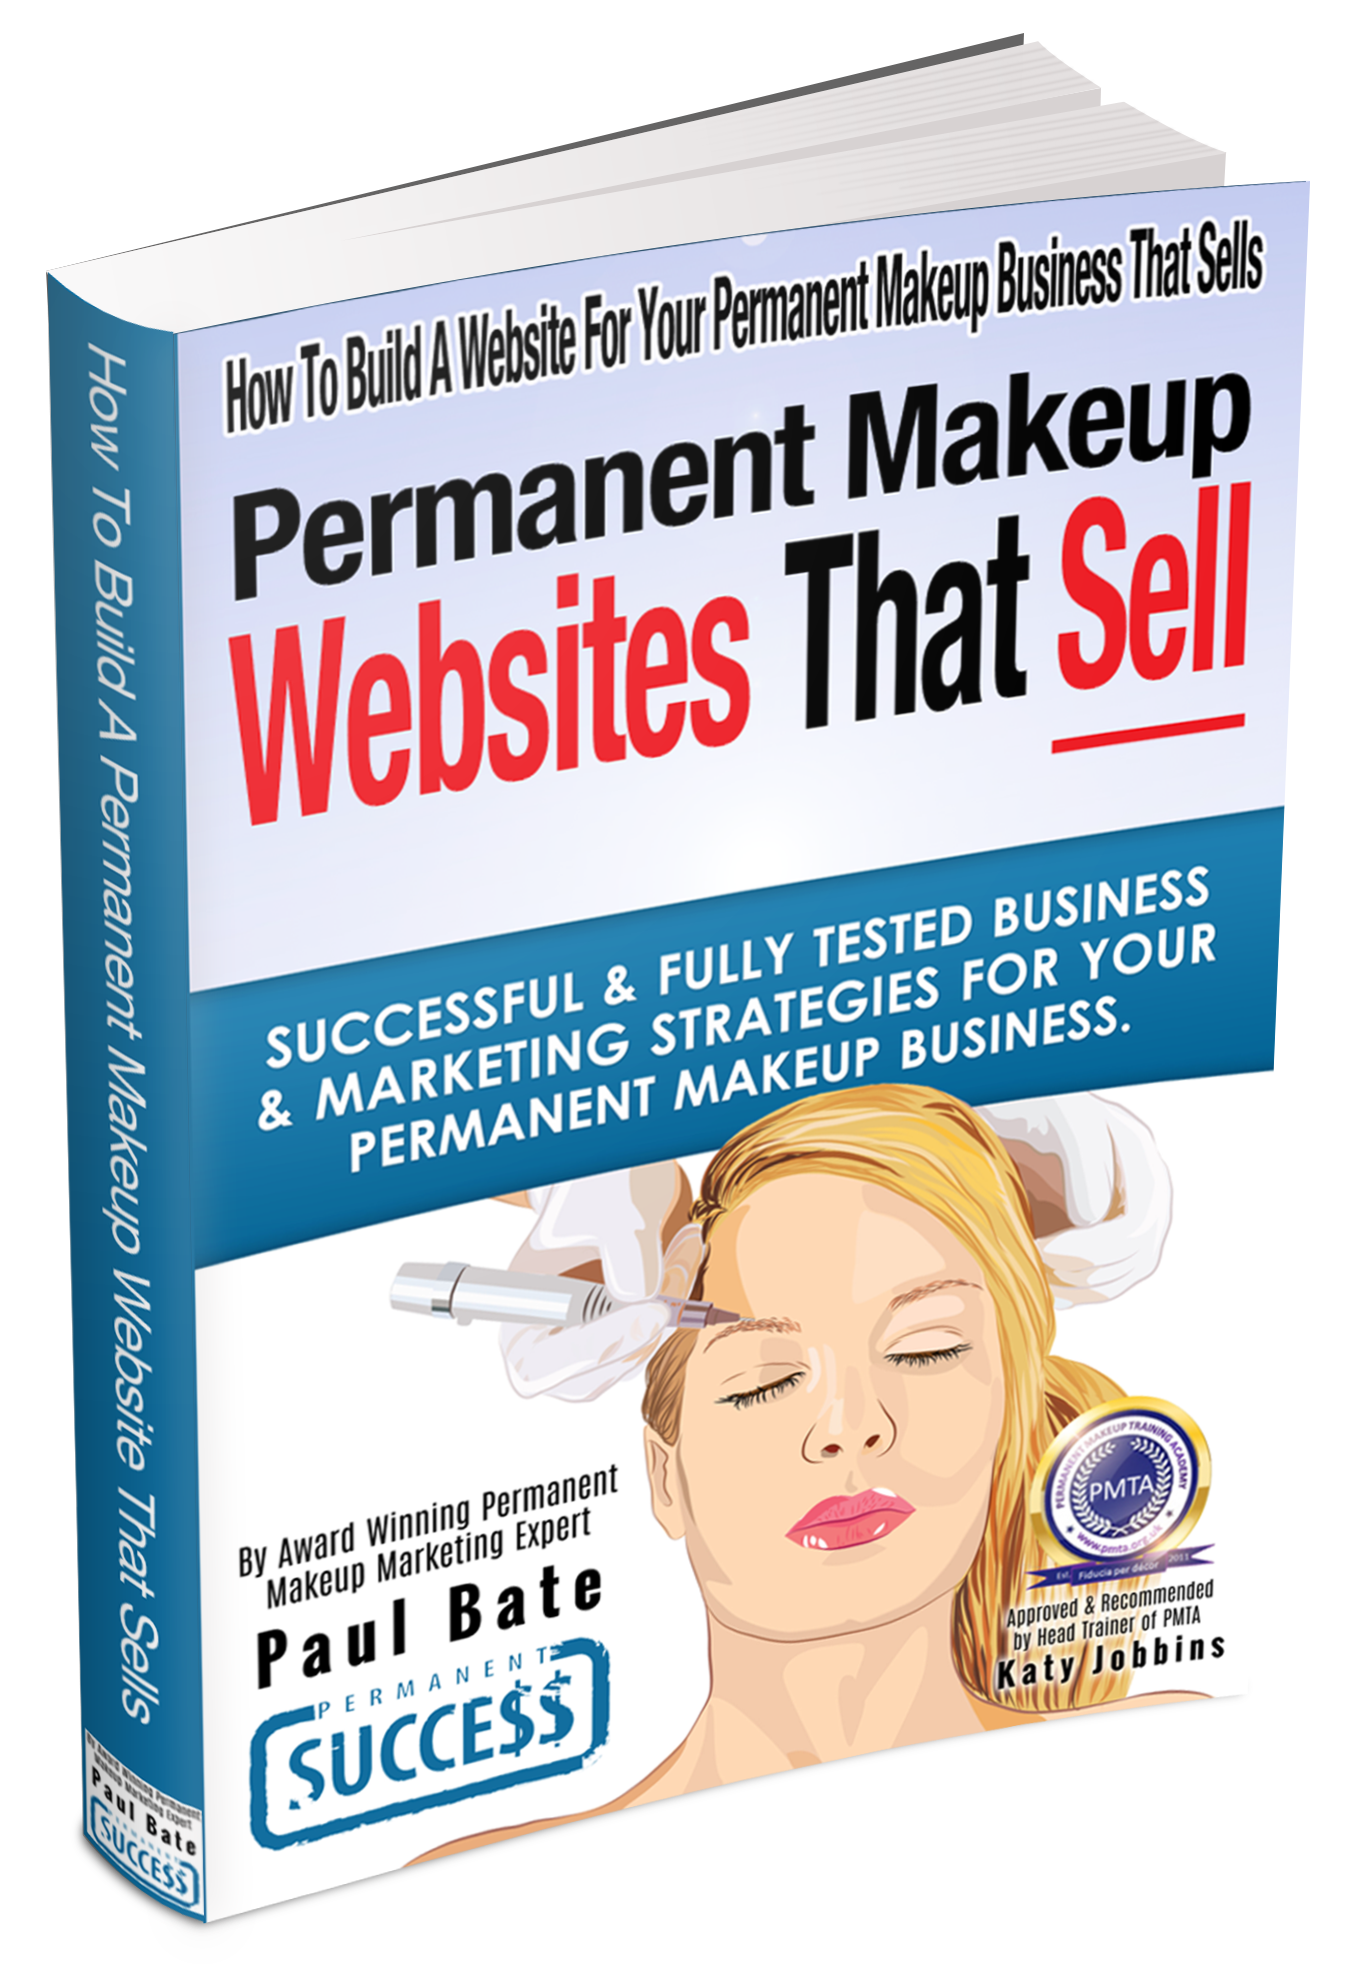 Perament Makeup Websites That Sell